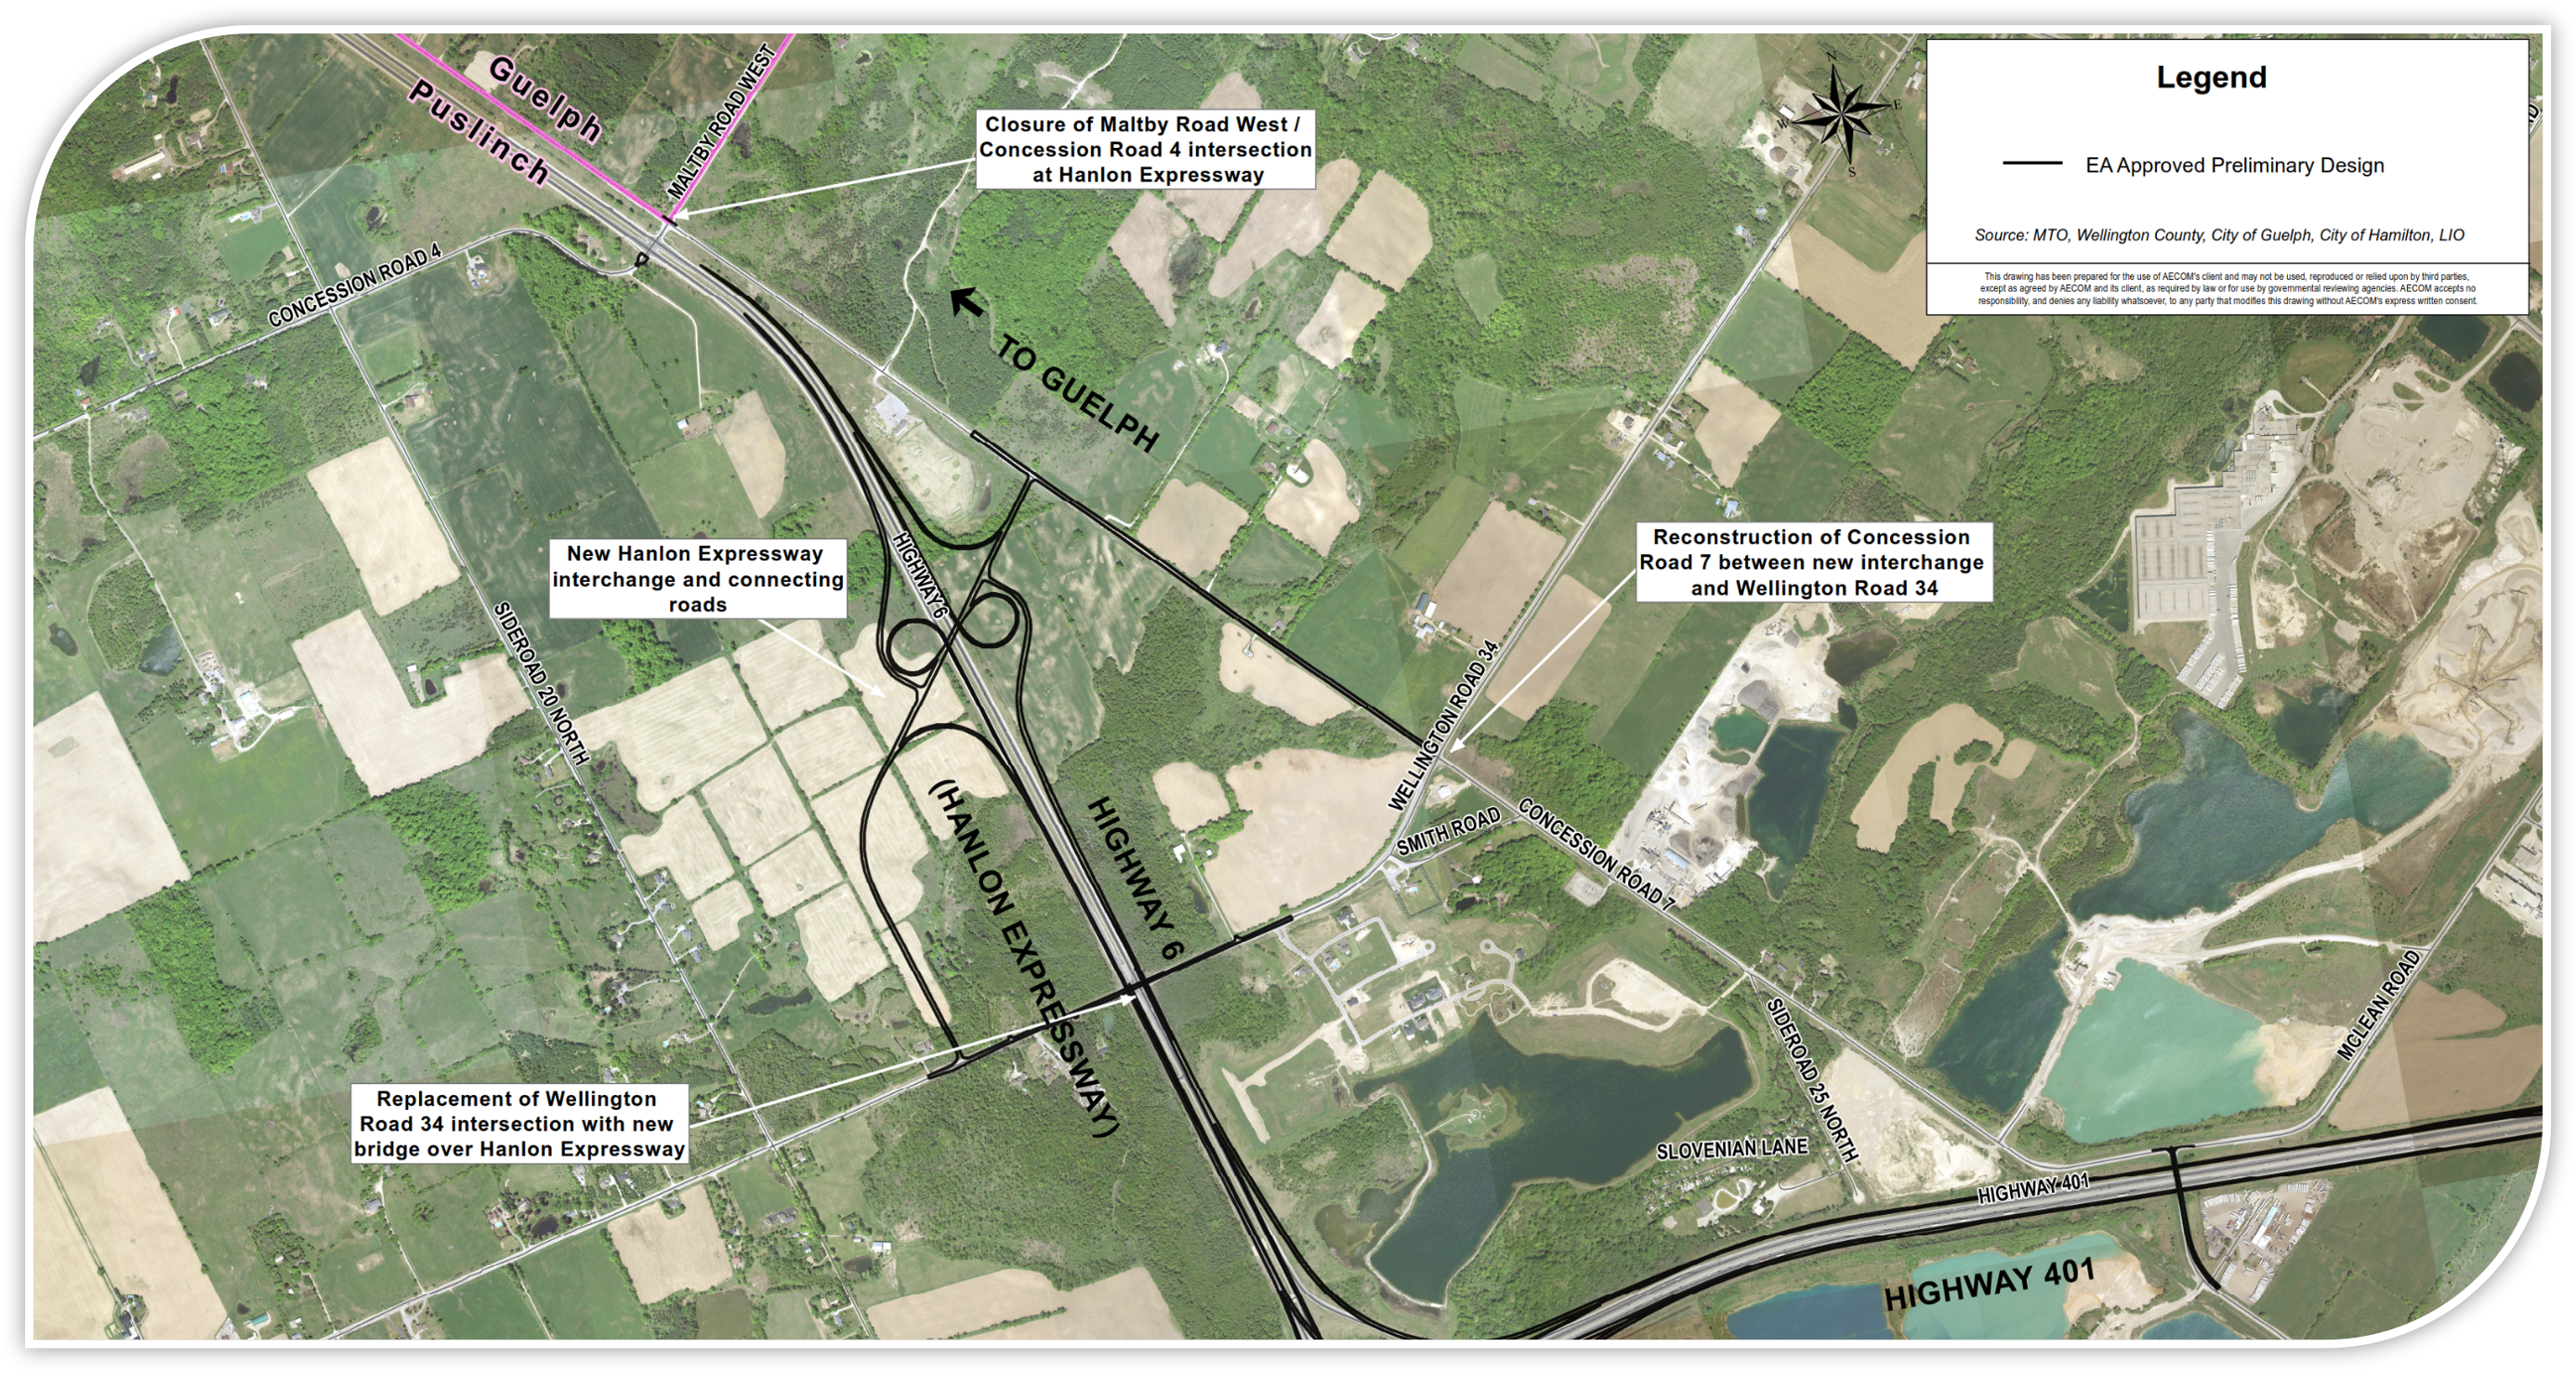 Aerial Map showing the plan that was approved under the previous EA reports for Highway 6 (Hanlon Expressway) north of Highway 401. The plan shows: Replacement of Wellington Road 34 intersection with new bridge over Hanlon Expressway, Closure of Maltby Road West / Concession Road 4 Intersection at Hanlon Expressway, and a New Hanlon expressway interchange and connecting roads mid-way between Wellington Road 34 and Maltby Road.